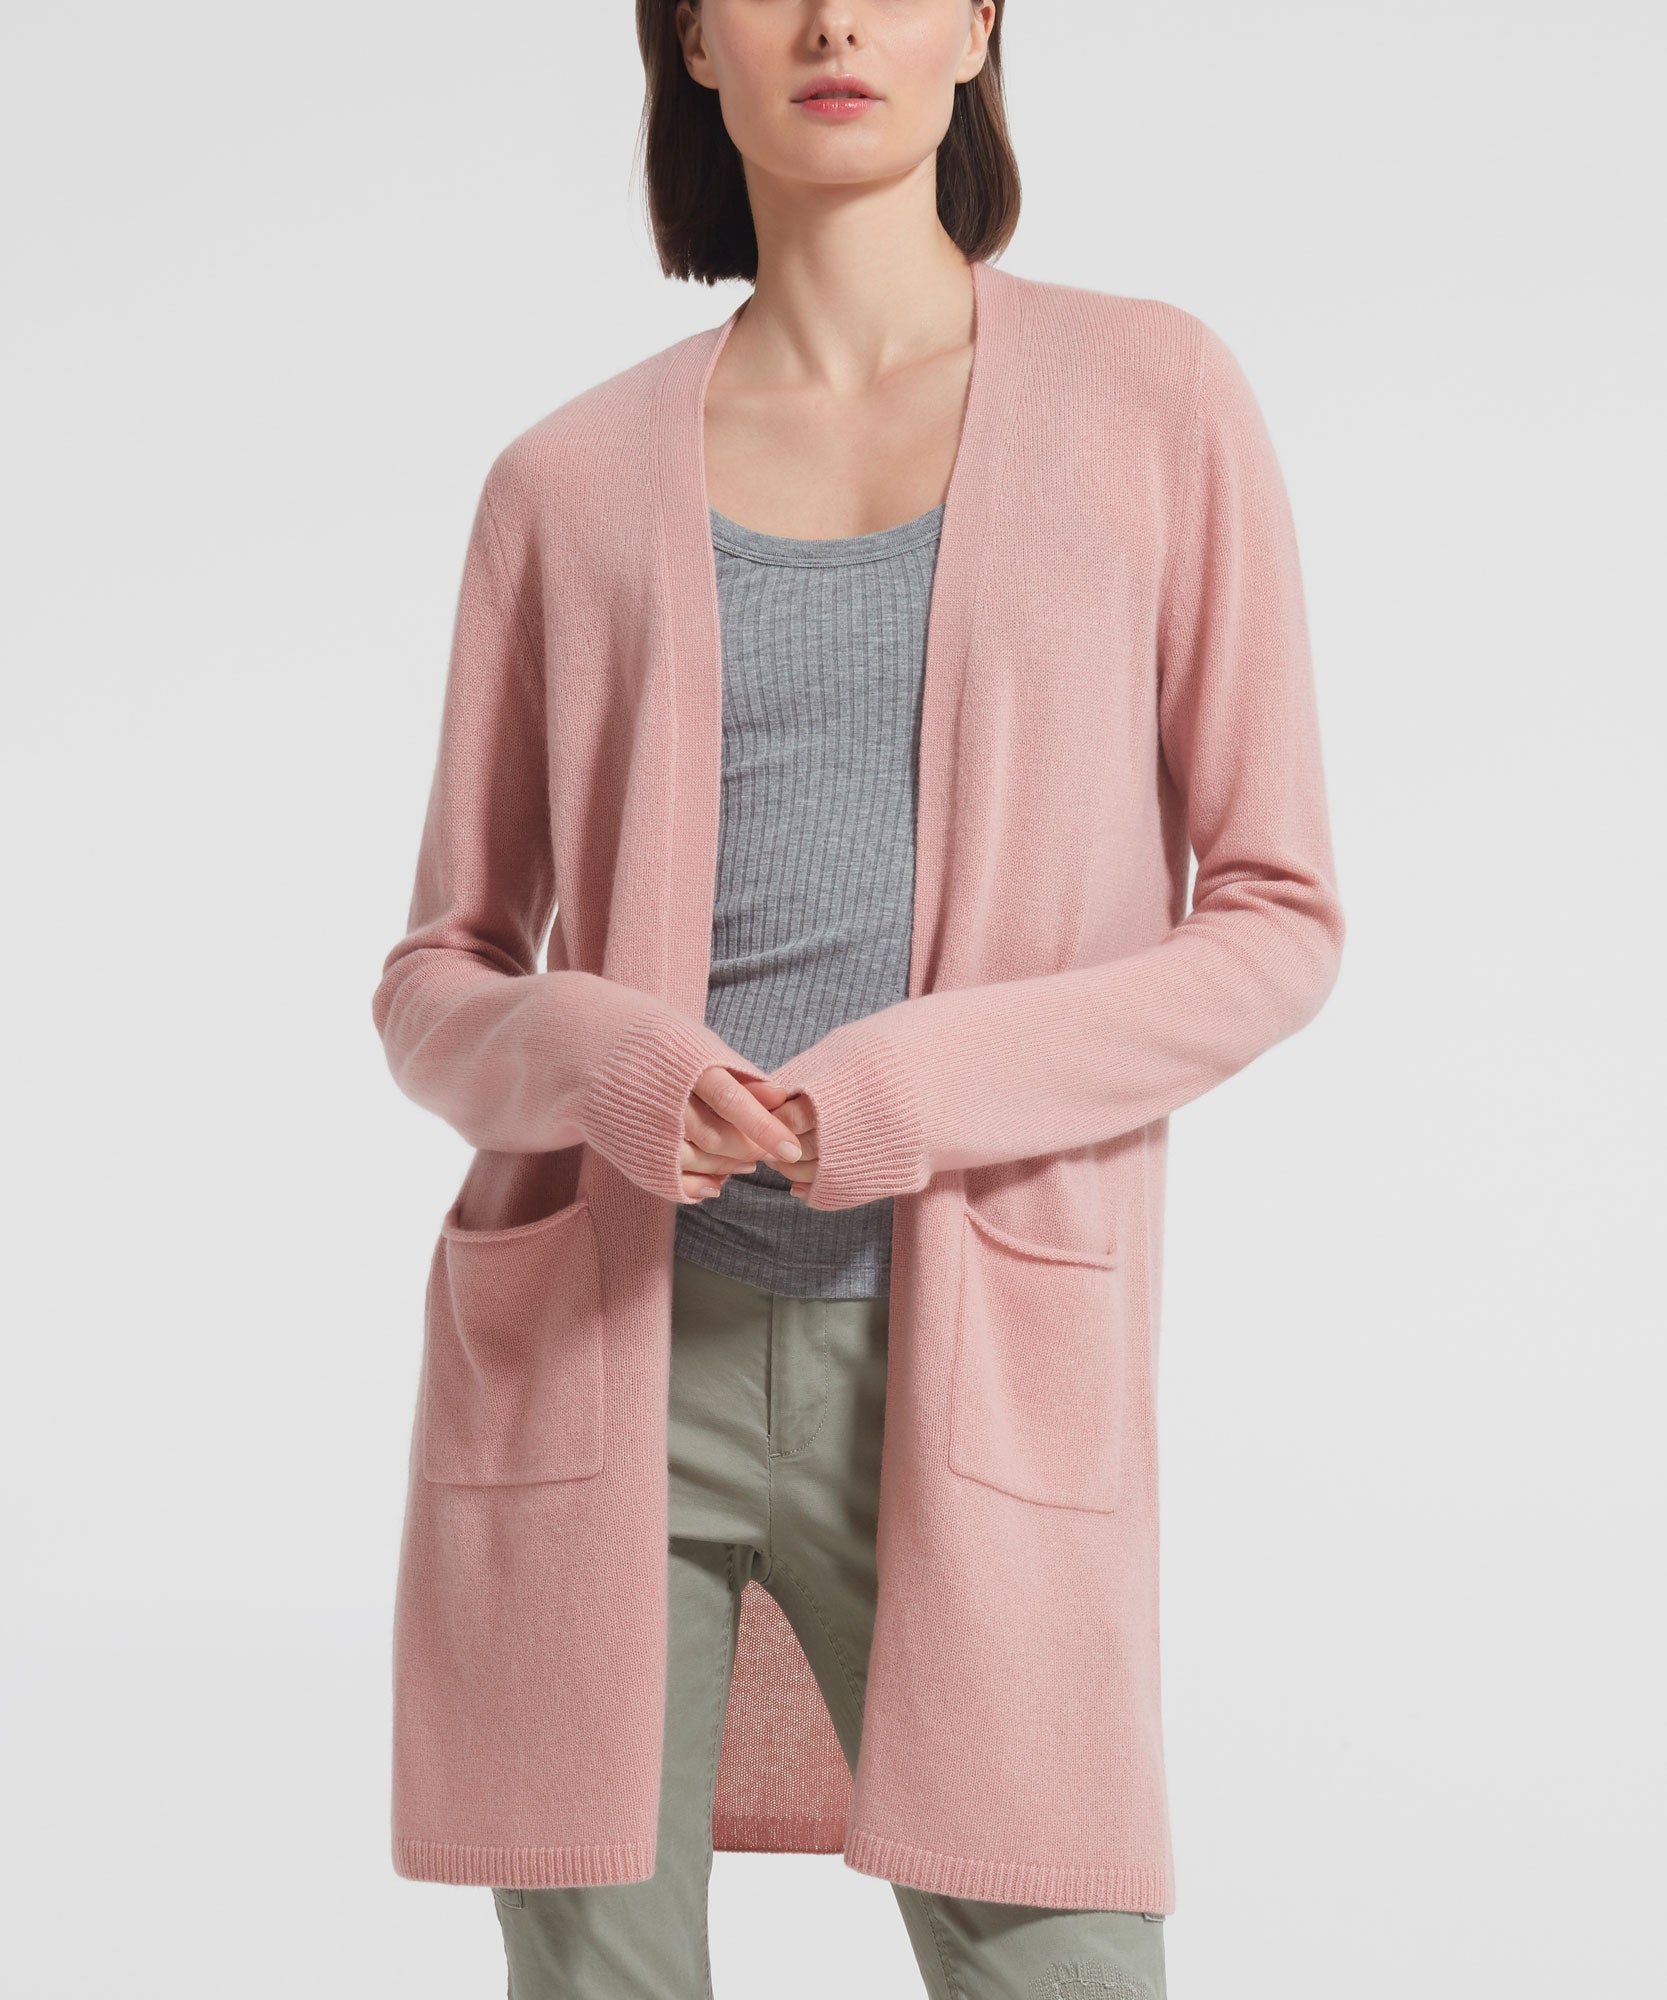 Clay Cashmere Cardigan - Women's Luxe Sweater by ATM Anthony Thomas Melillo